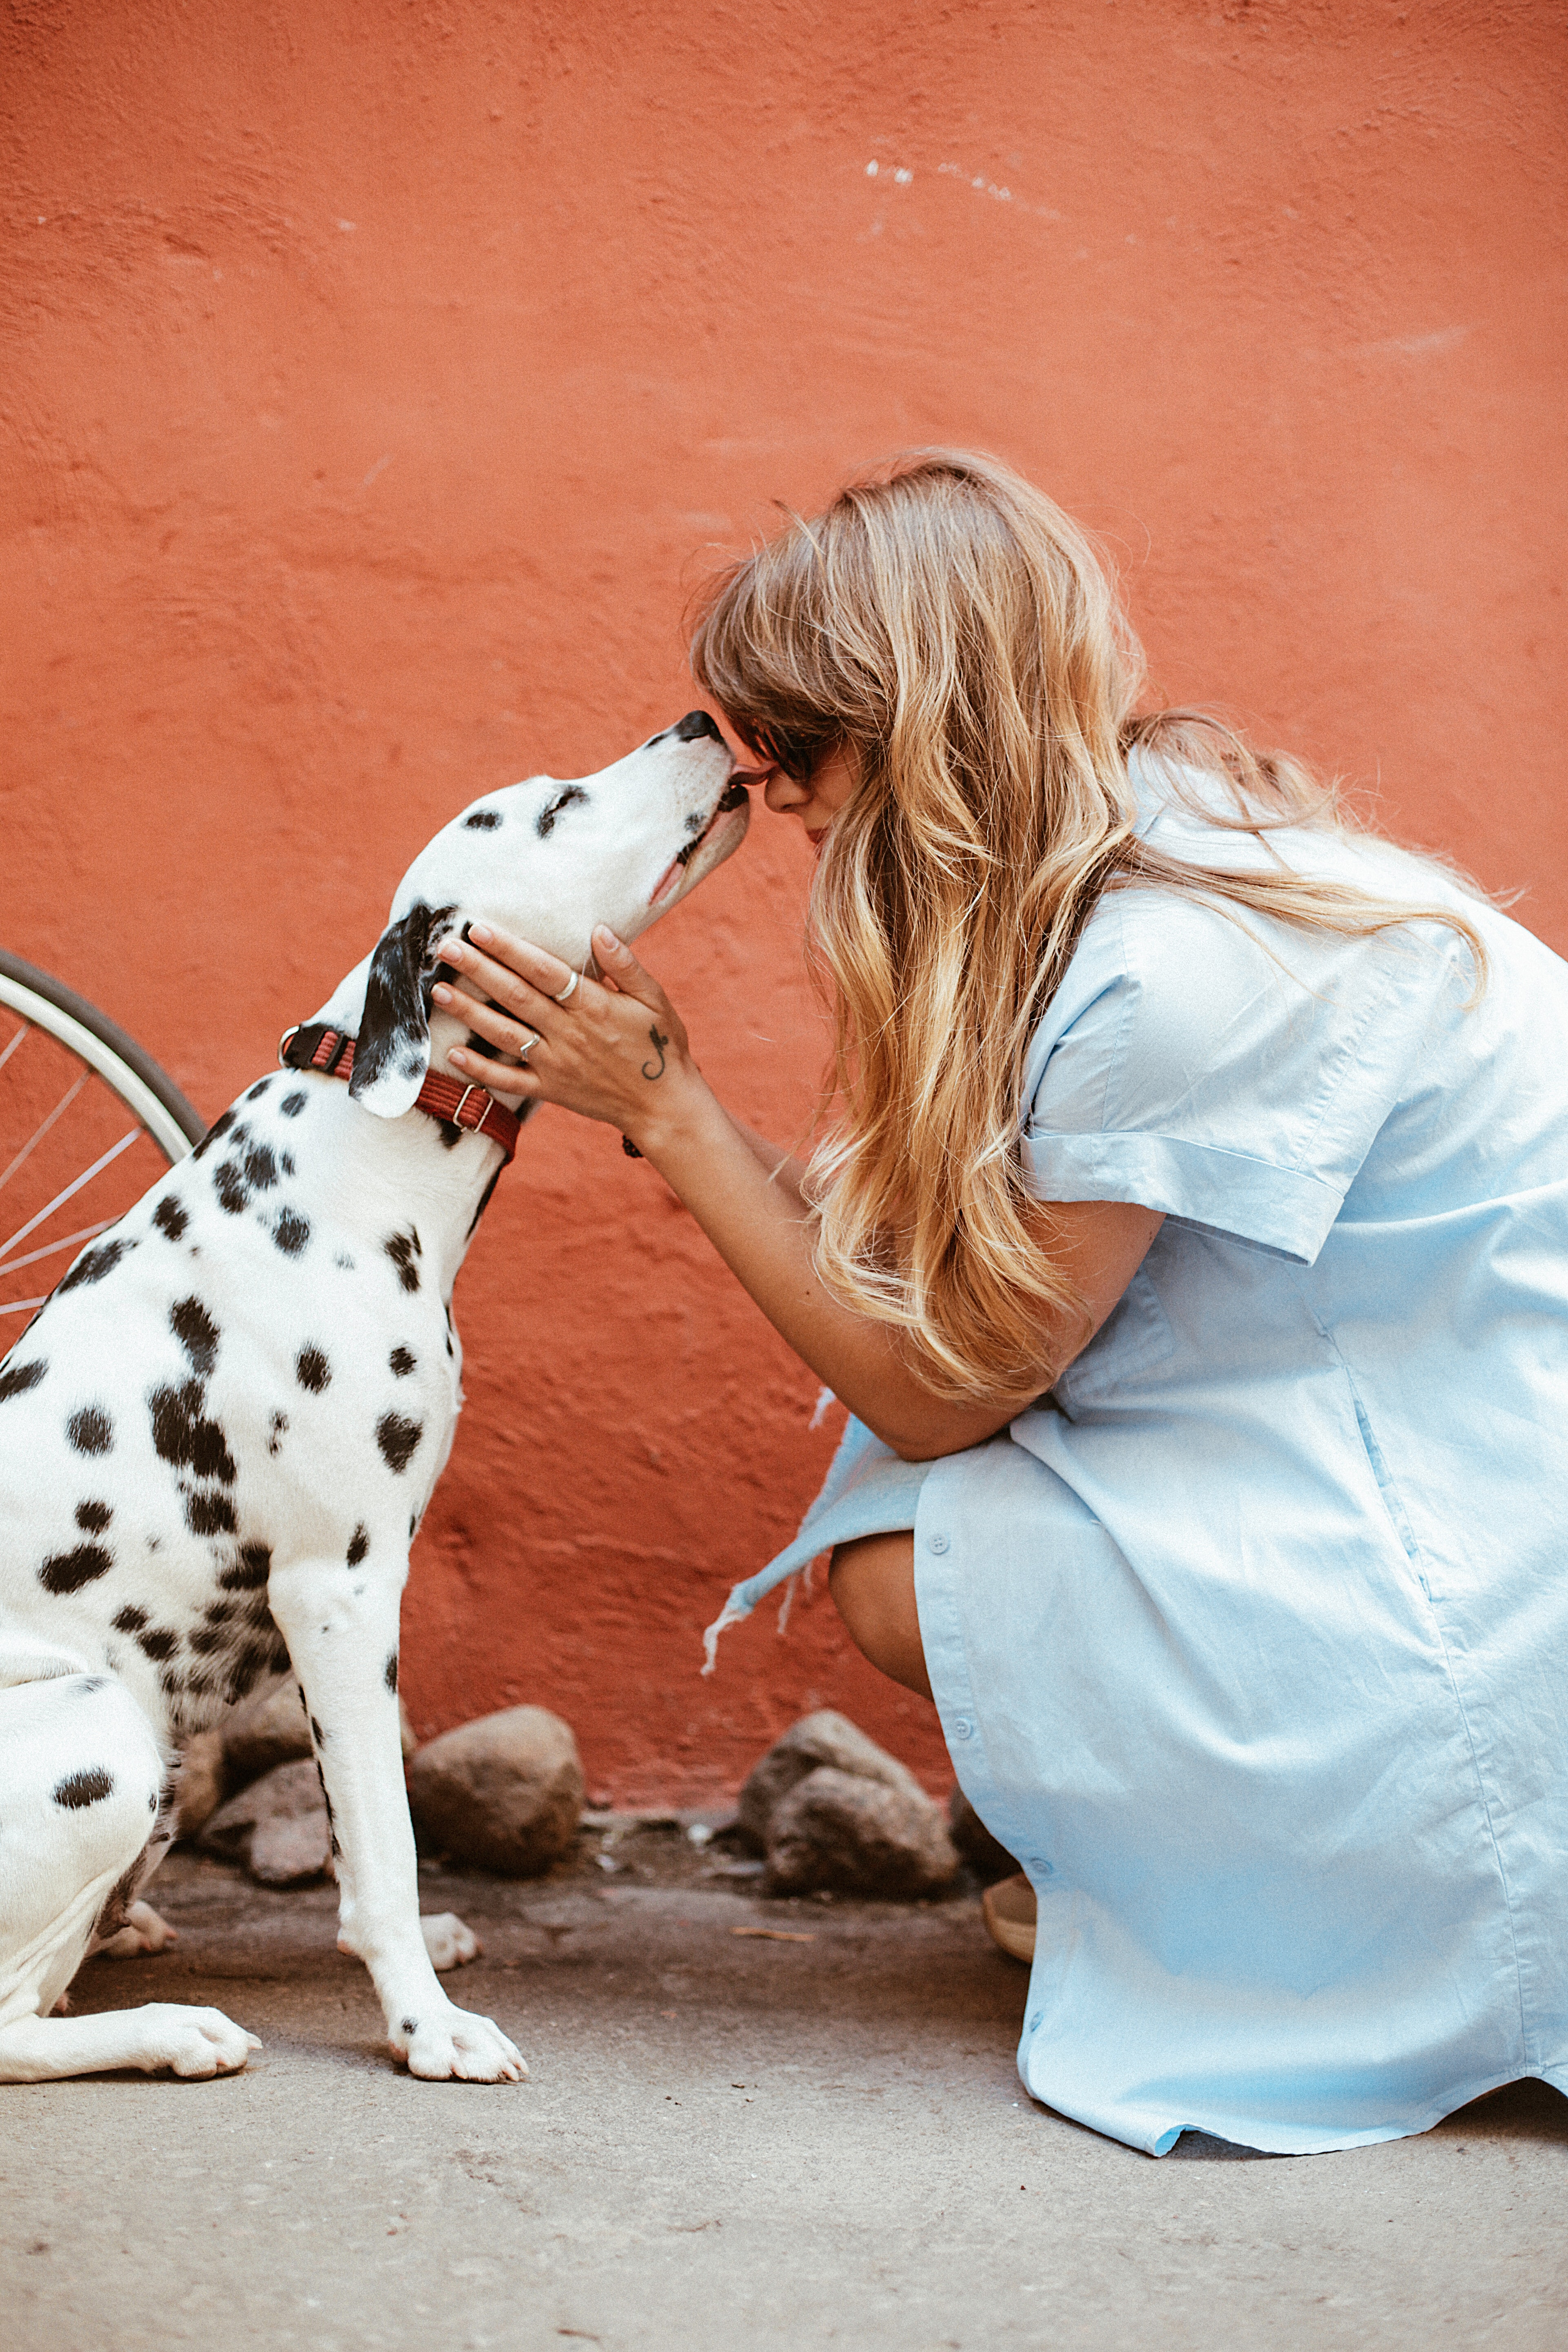 Kisses from a dog